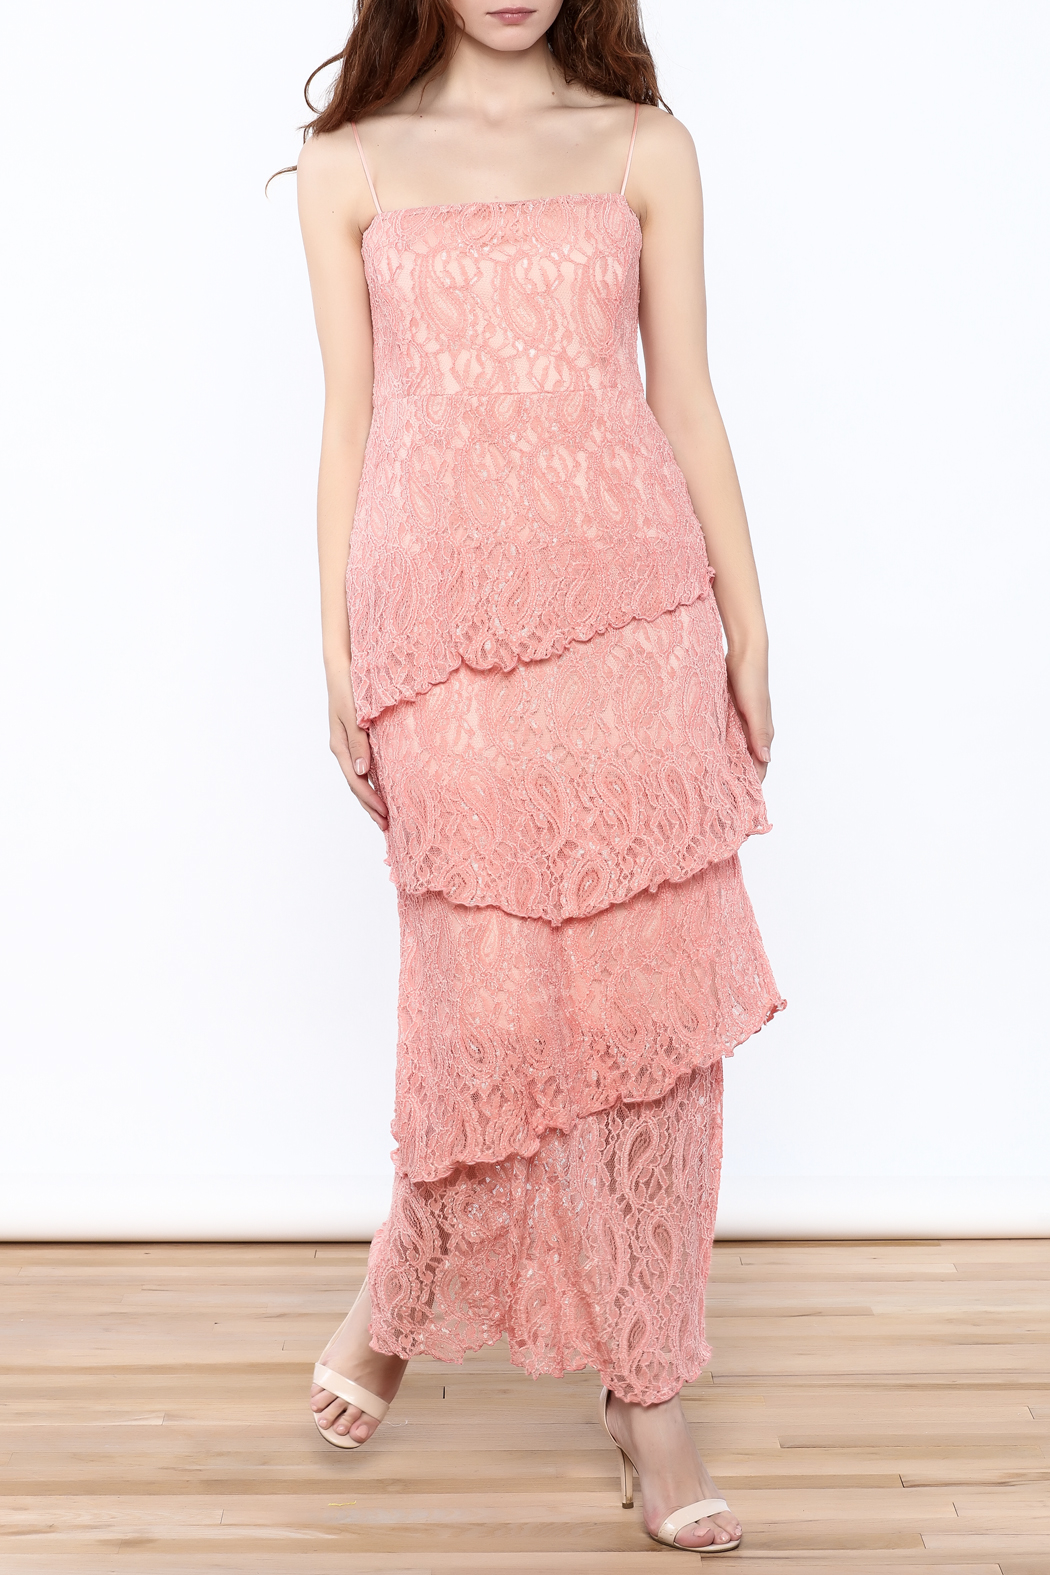 Verducci Coral Lace Tiered Dress - Main Image